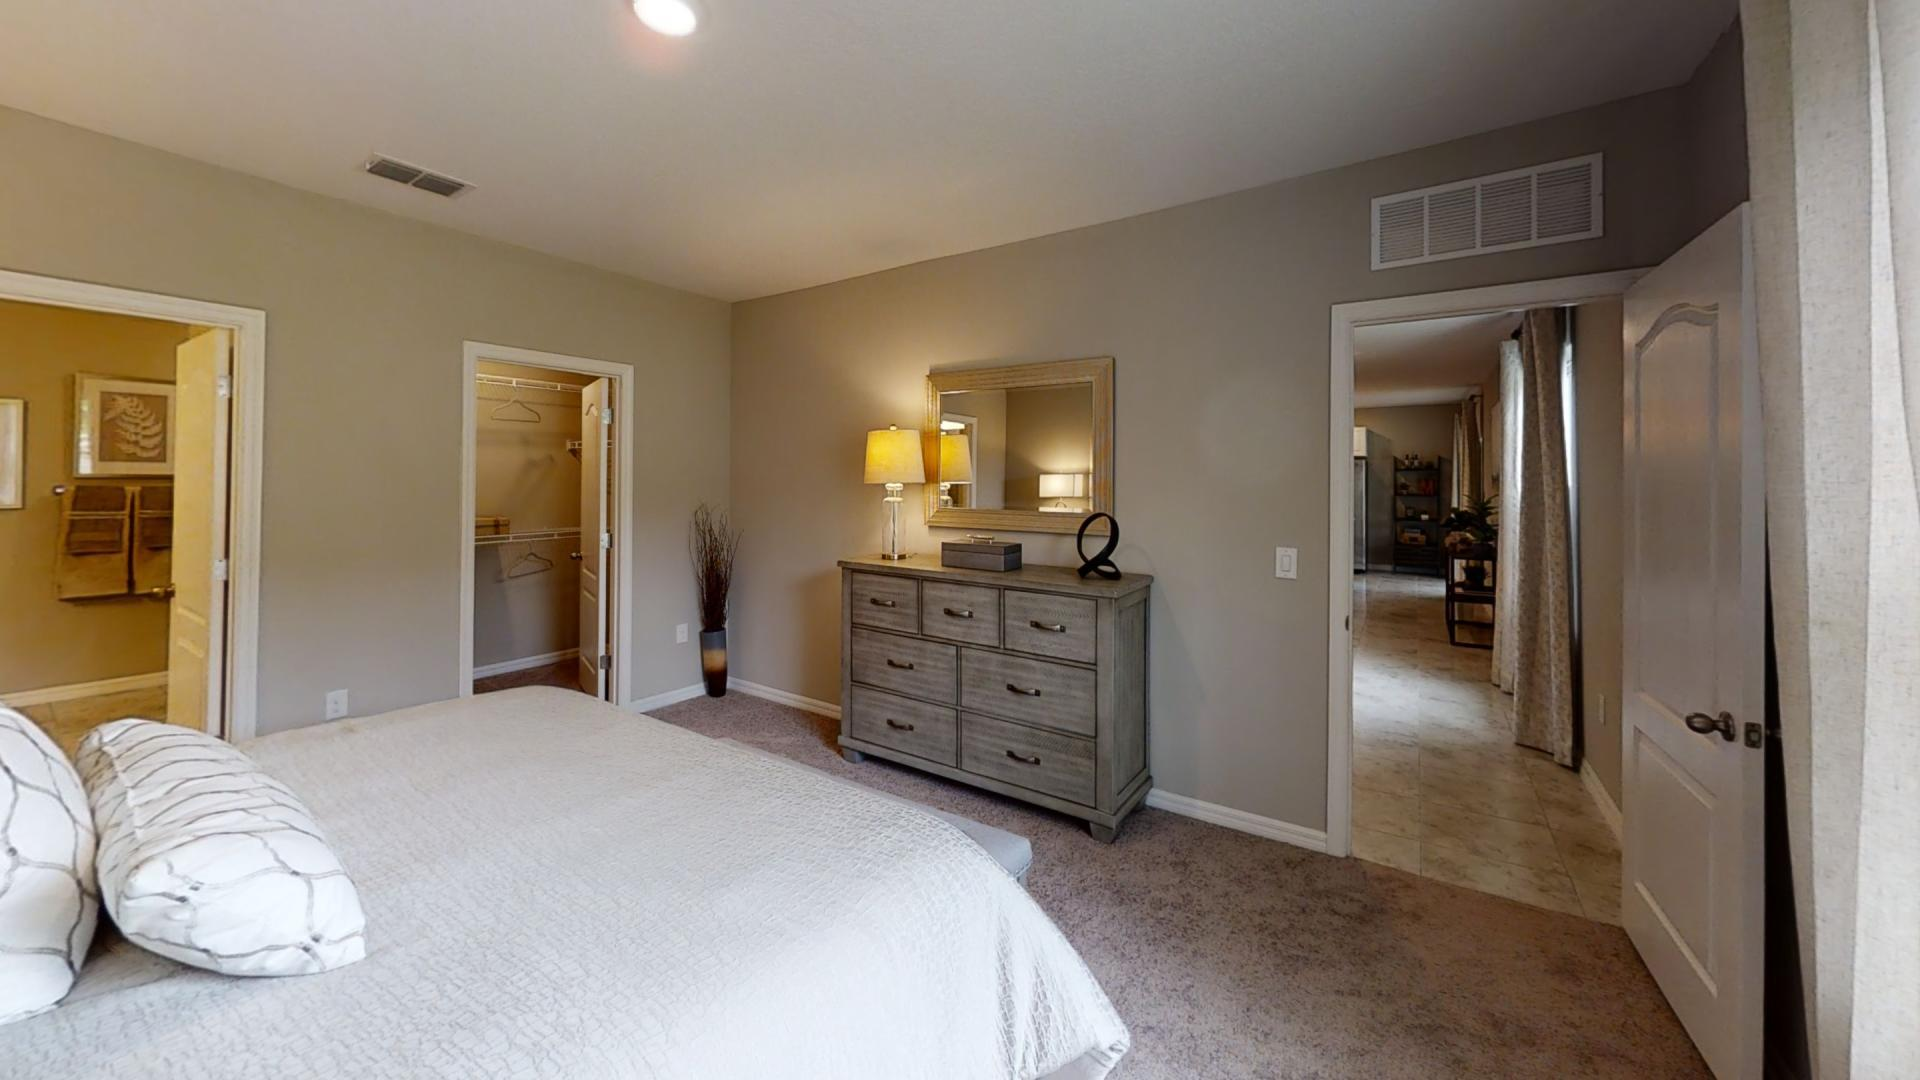 Bedroom featured in the Mesquite By Maronda Homes in Jacksonville-St. Augustine, GA